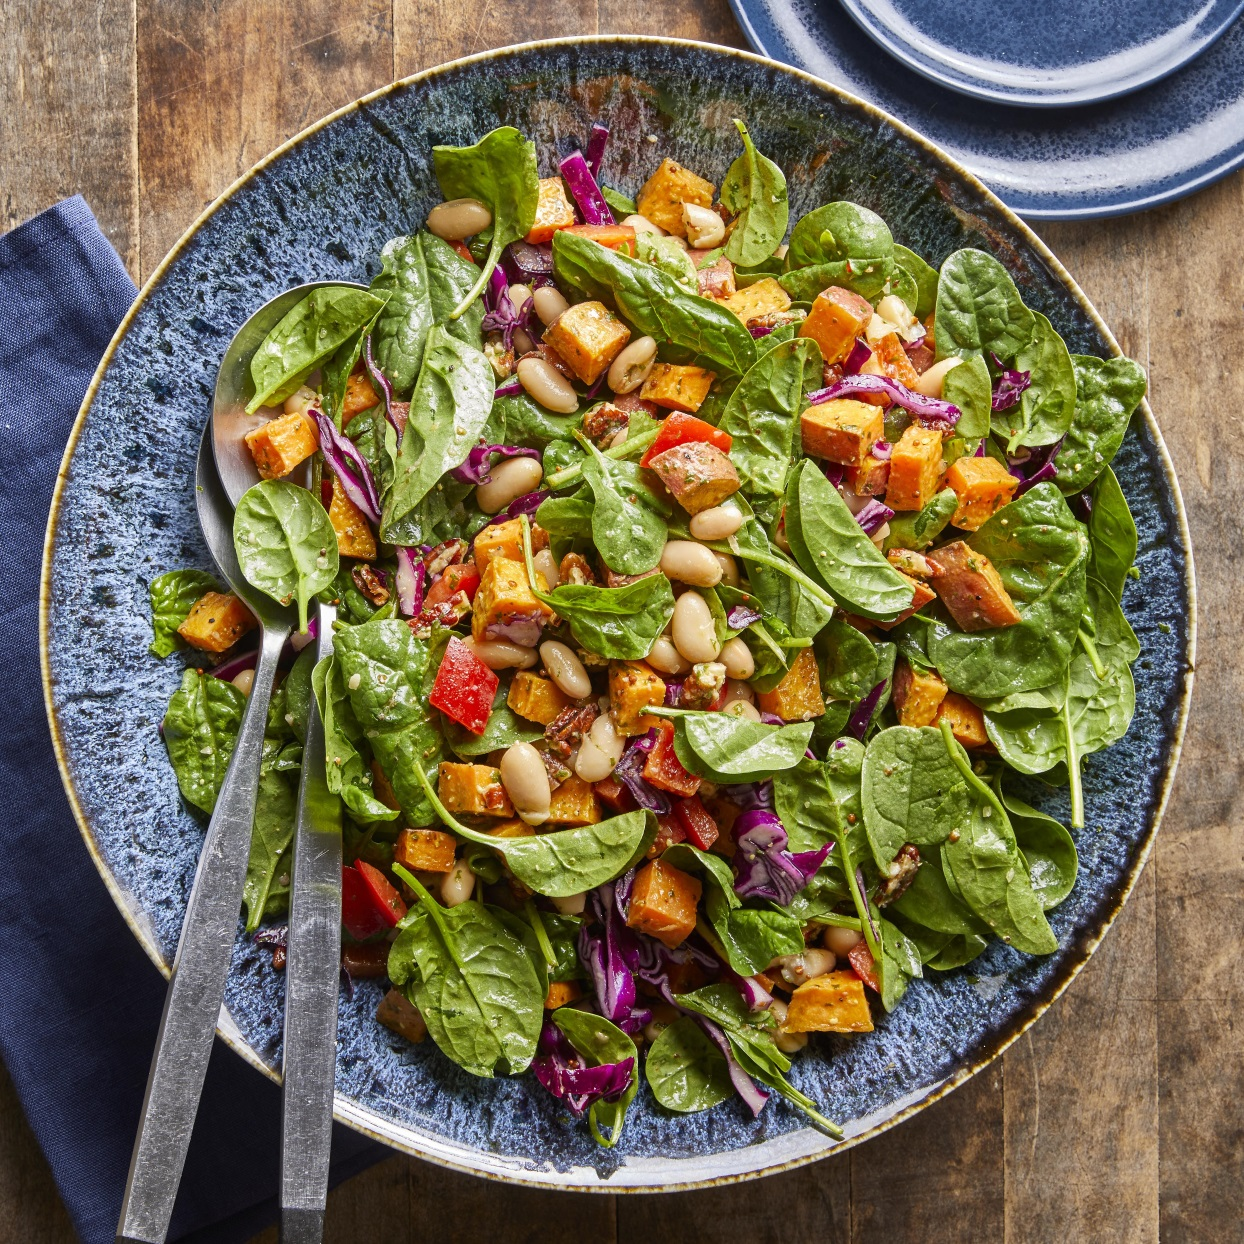 Spinach Salad with Roasted Sweet Potatoes, White Beans & Basil Vinaigrette